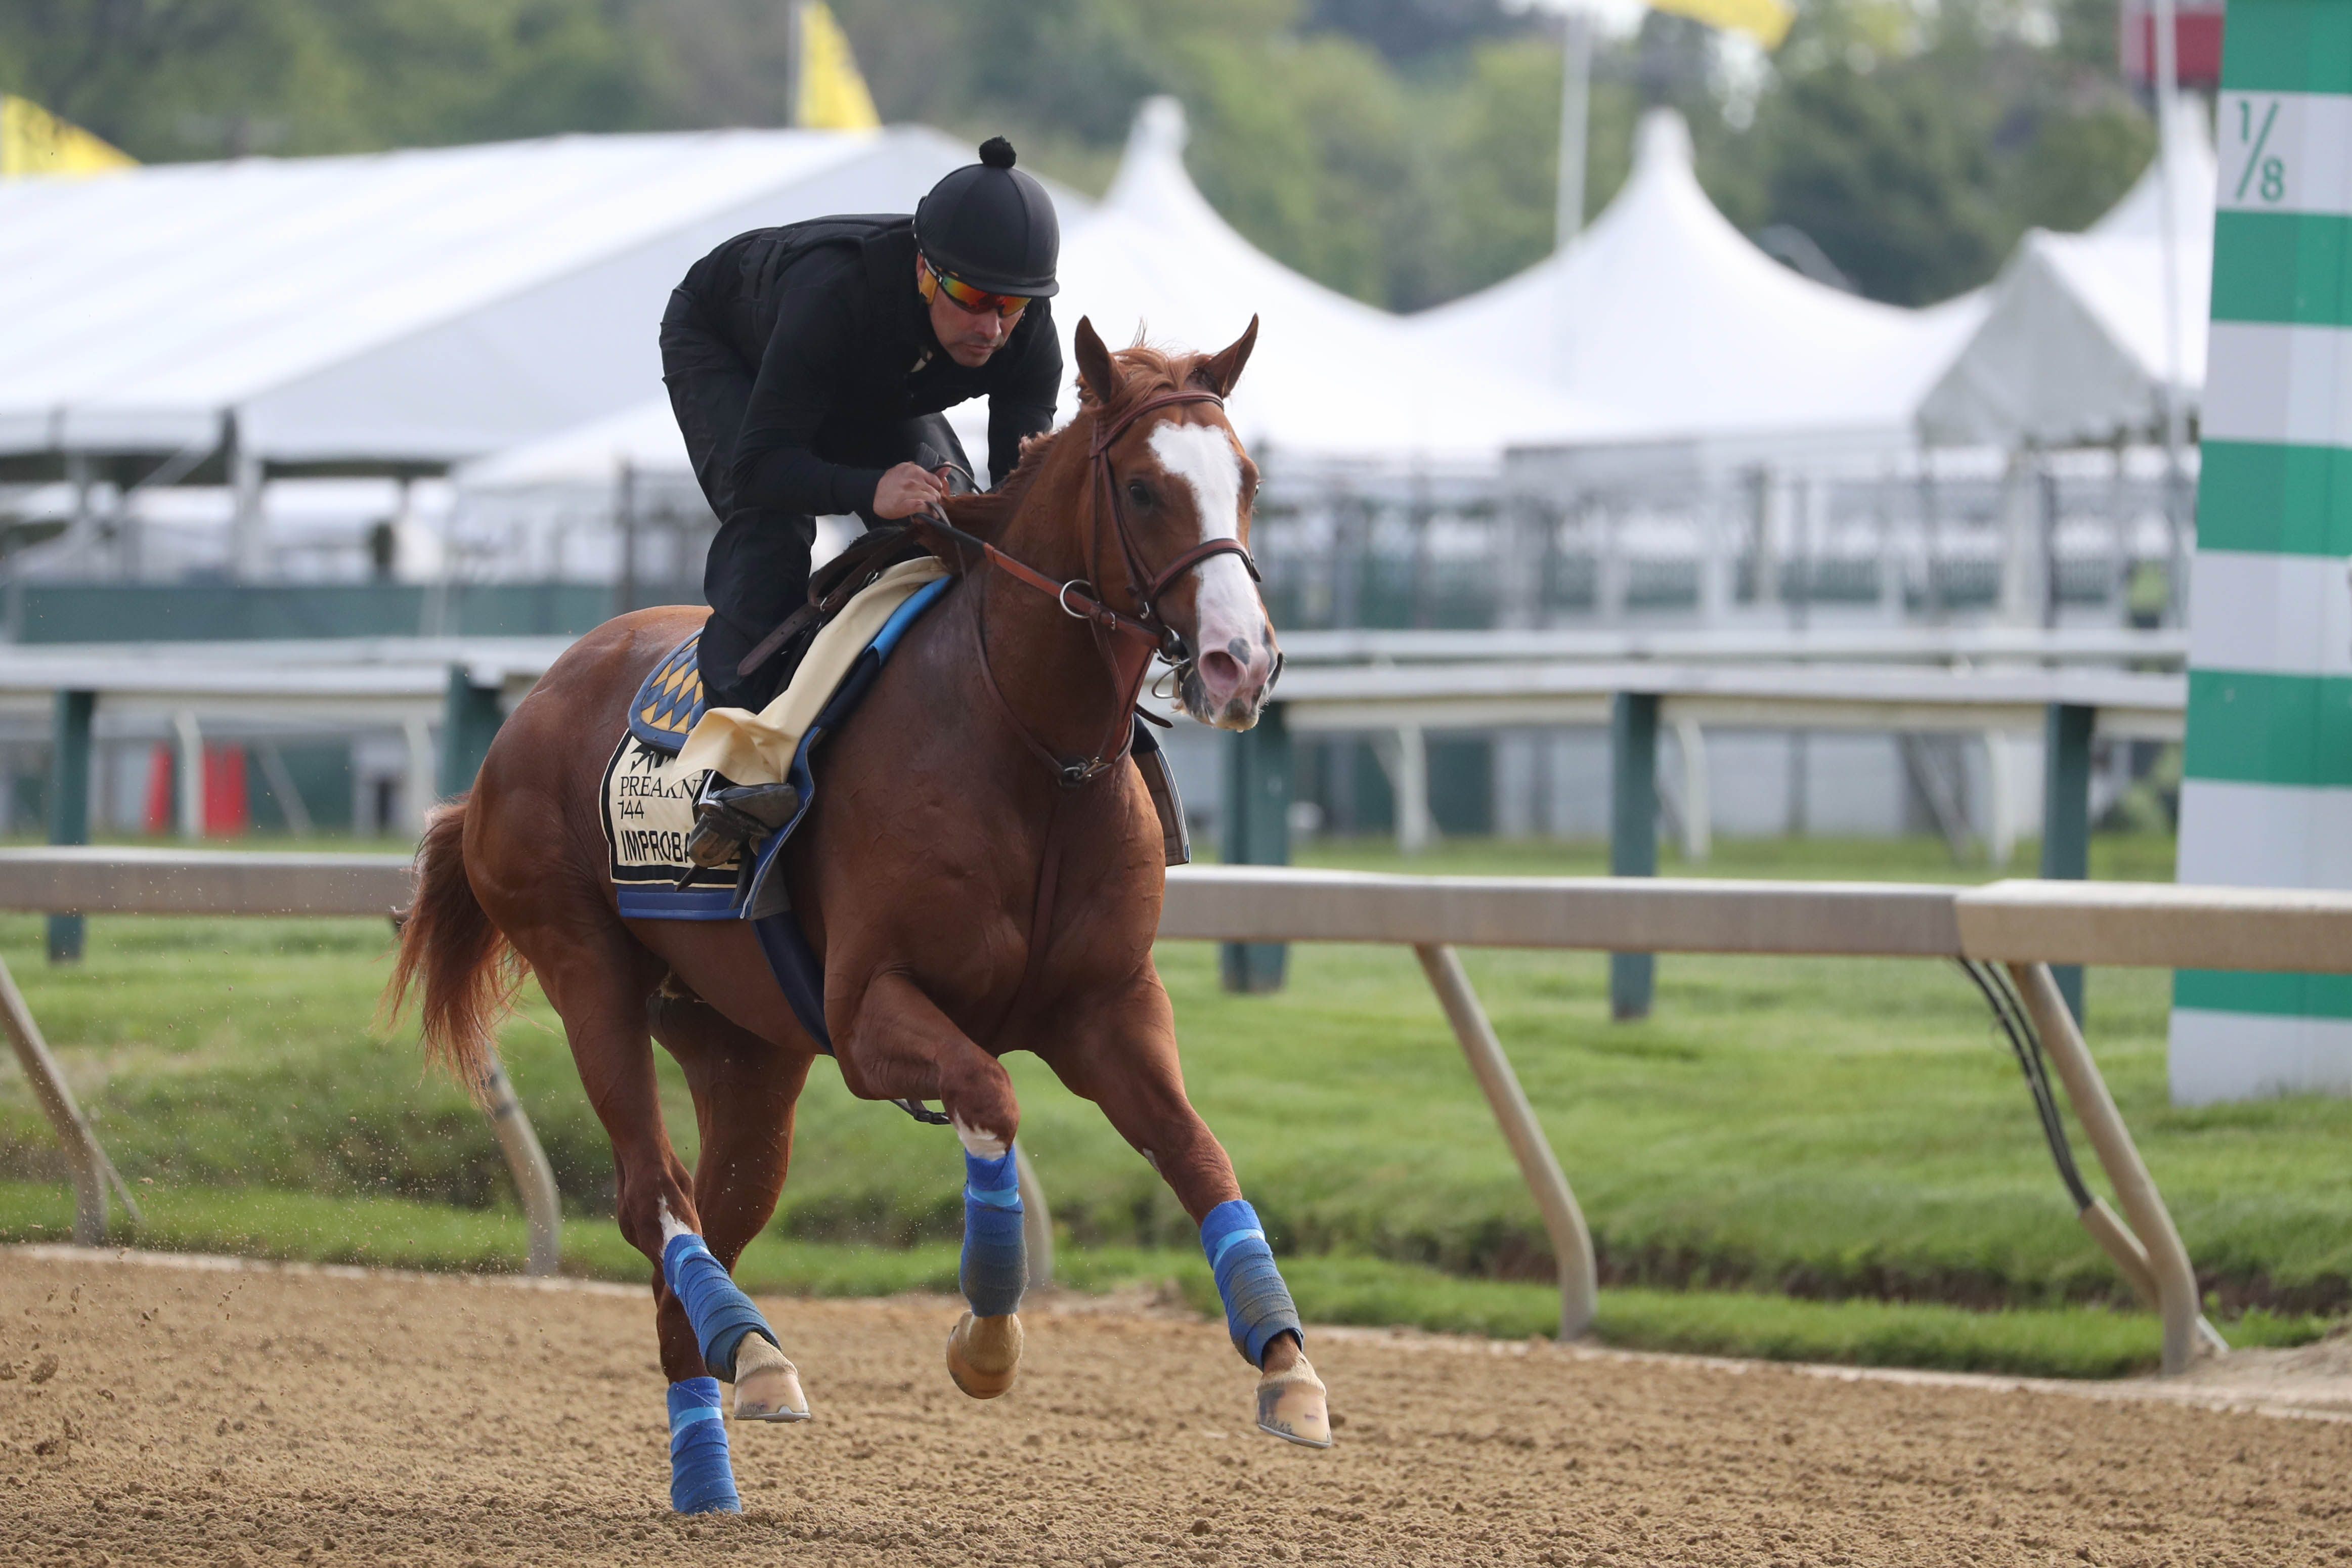 Betting lines and trends roundup for 2019 Preakness Stakes